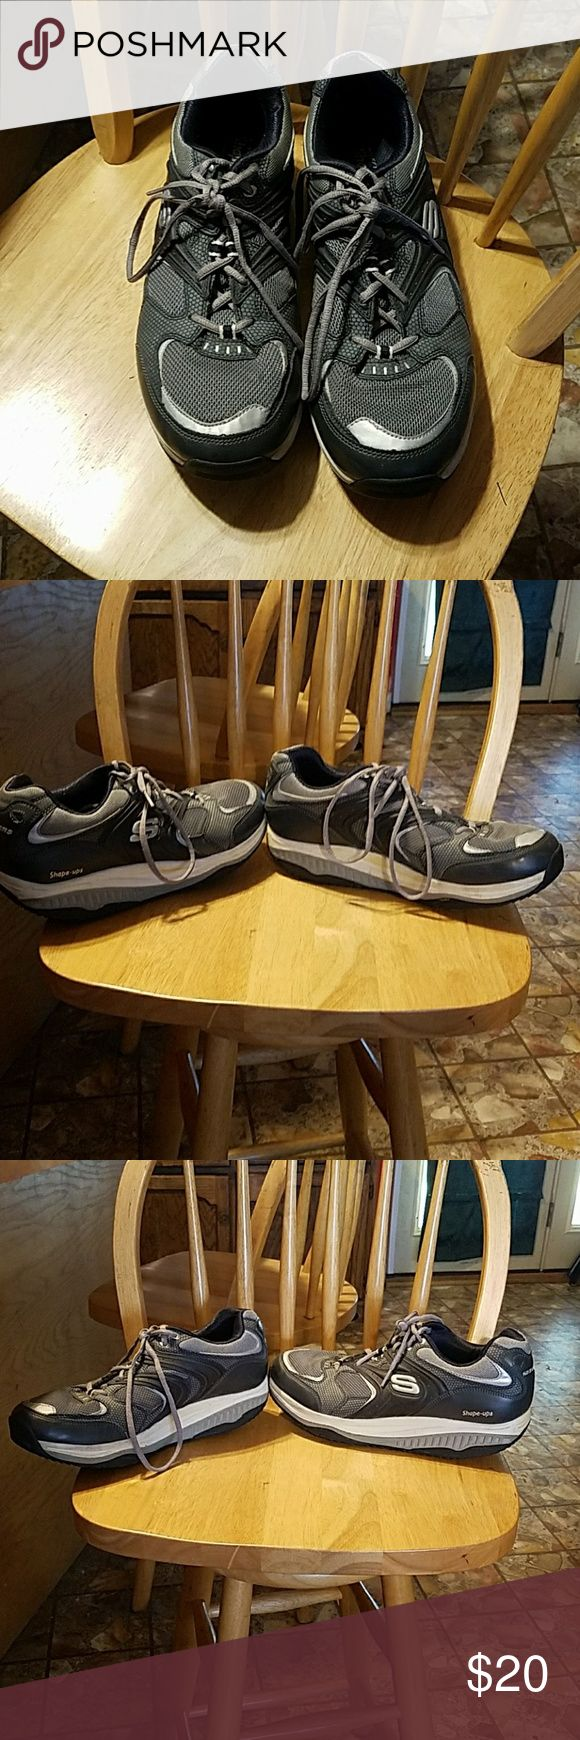 7a1be168e sketcher retailers cheap   OFF60% The Largest Catalog Discounts